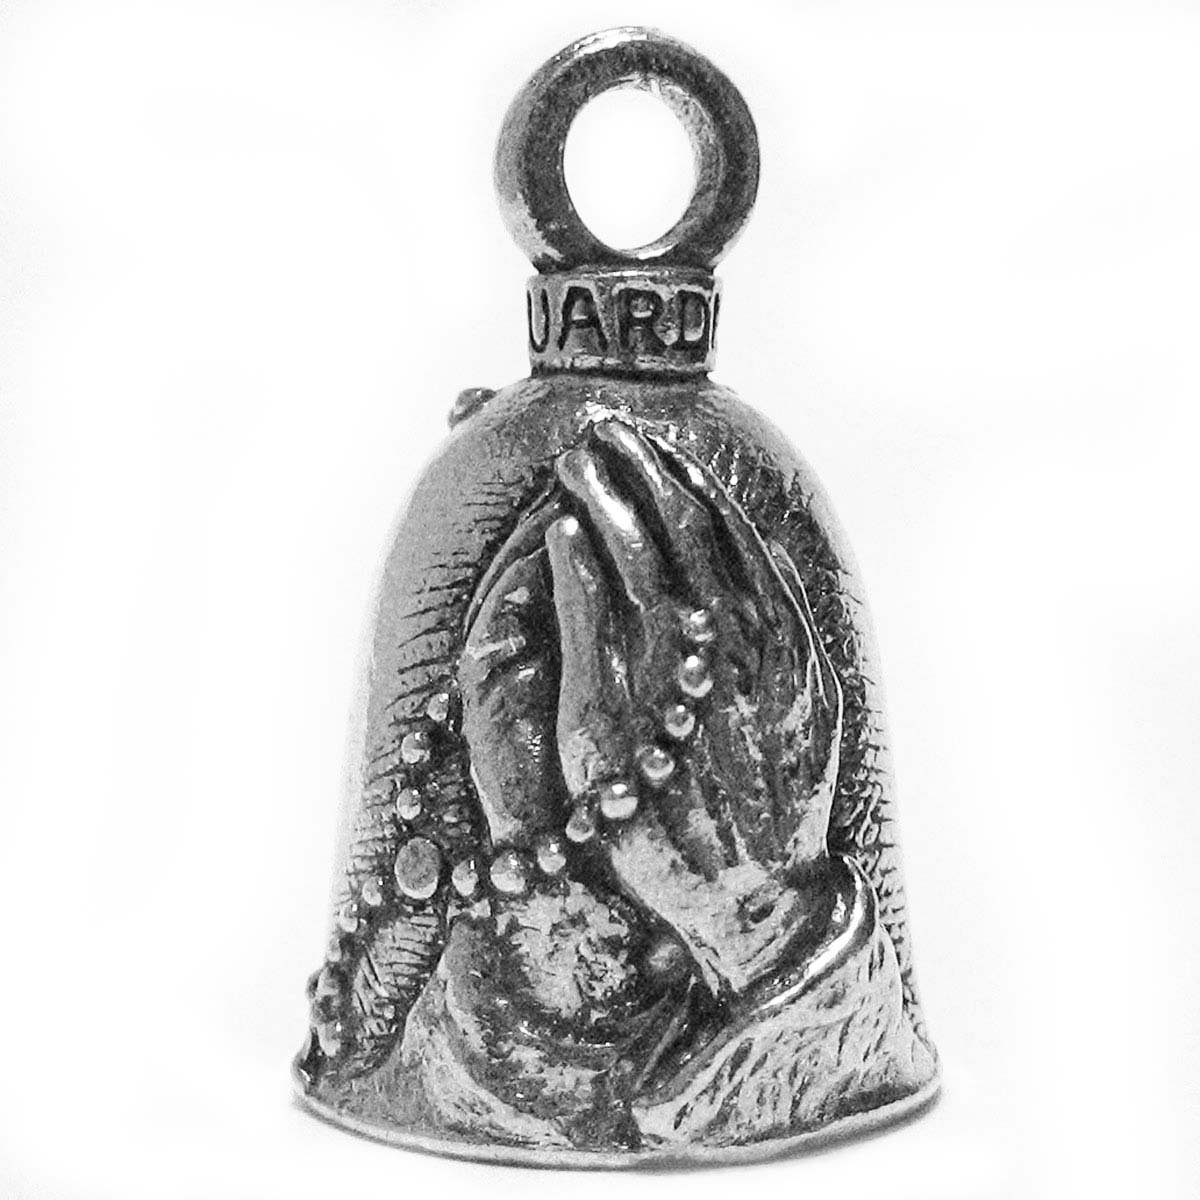 Guardian® Praying Hands with Rosary and Holy Cross Motorcycle Biker Luck Gremlin Riding Bell Guardian® Bell GBRSRY